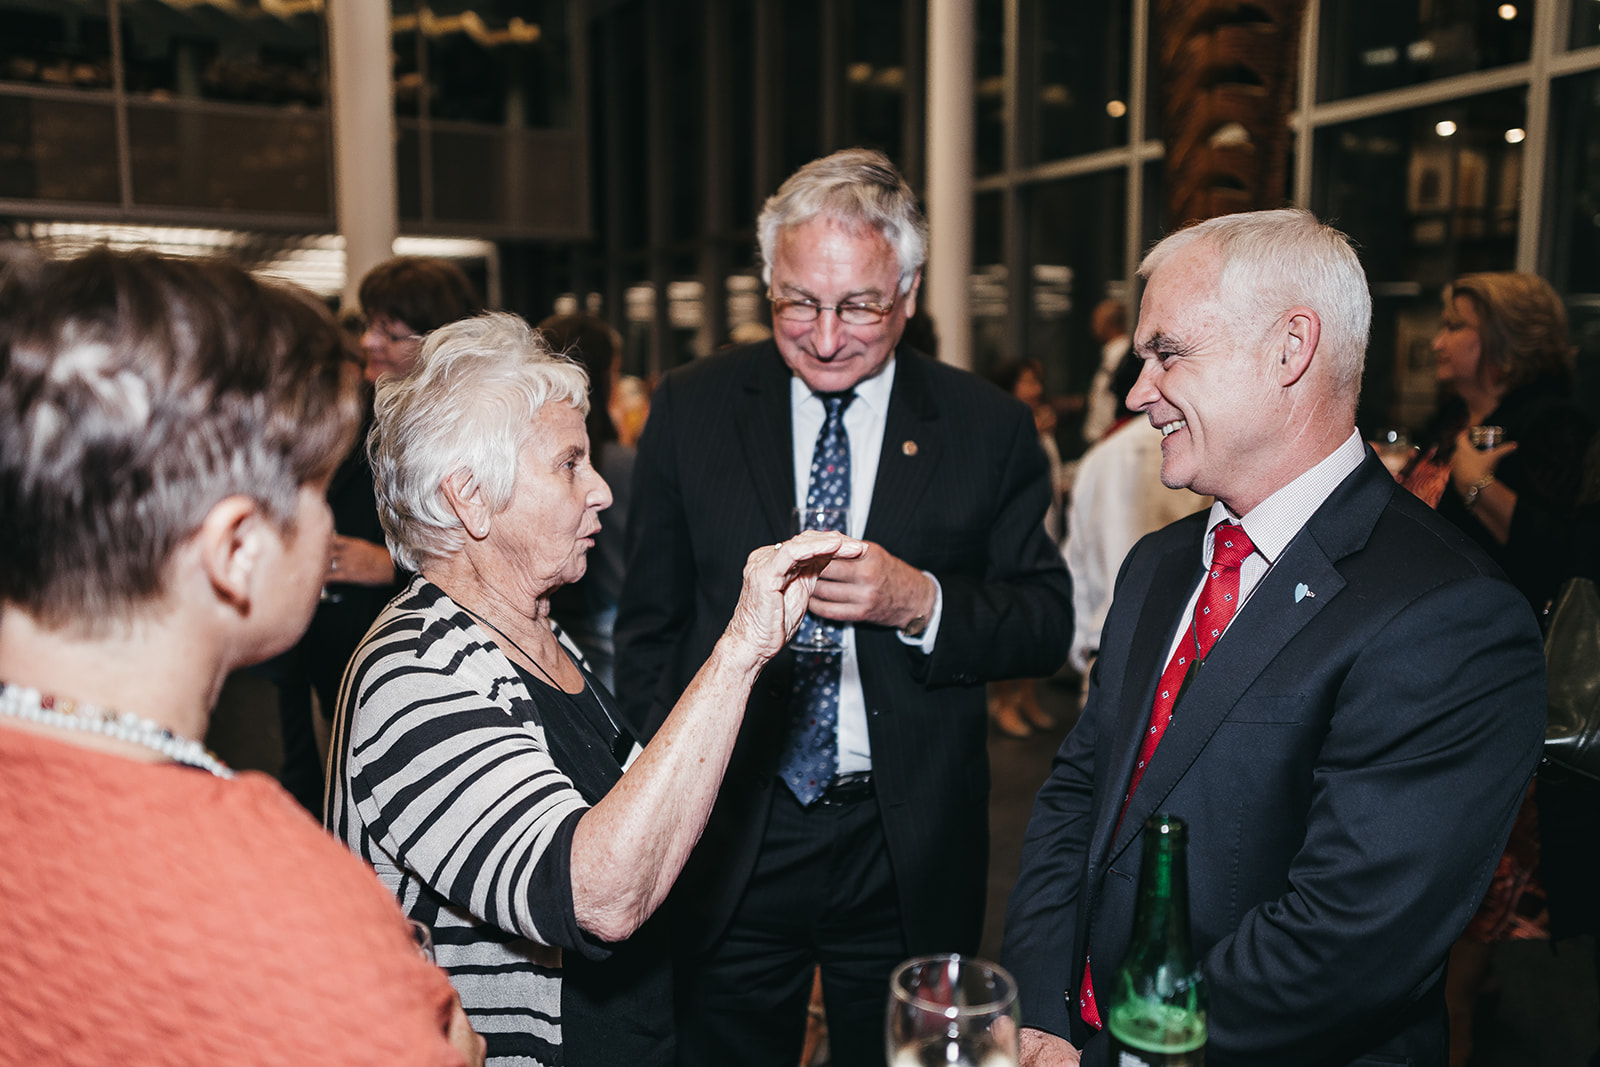 Beverley, Lady Reeves with Peter Garnett and Simon Moutter at The Reeves Lecture 2018 . Photo Credit:  Fata Tuialii Photography